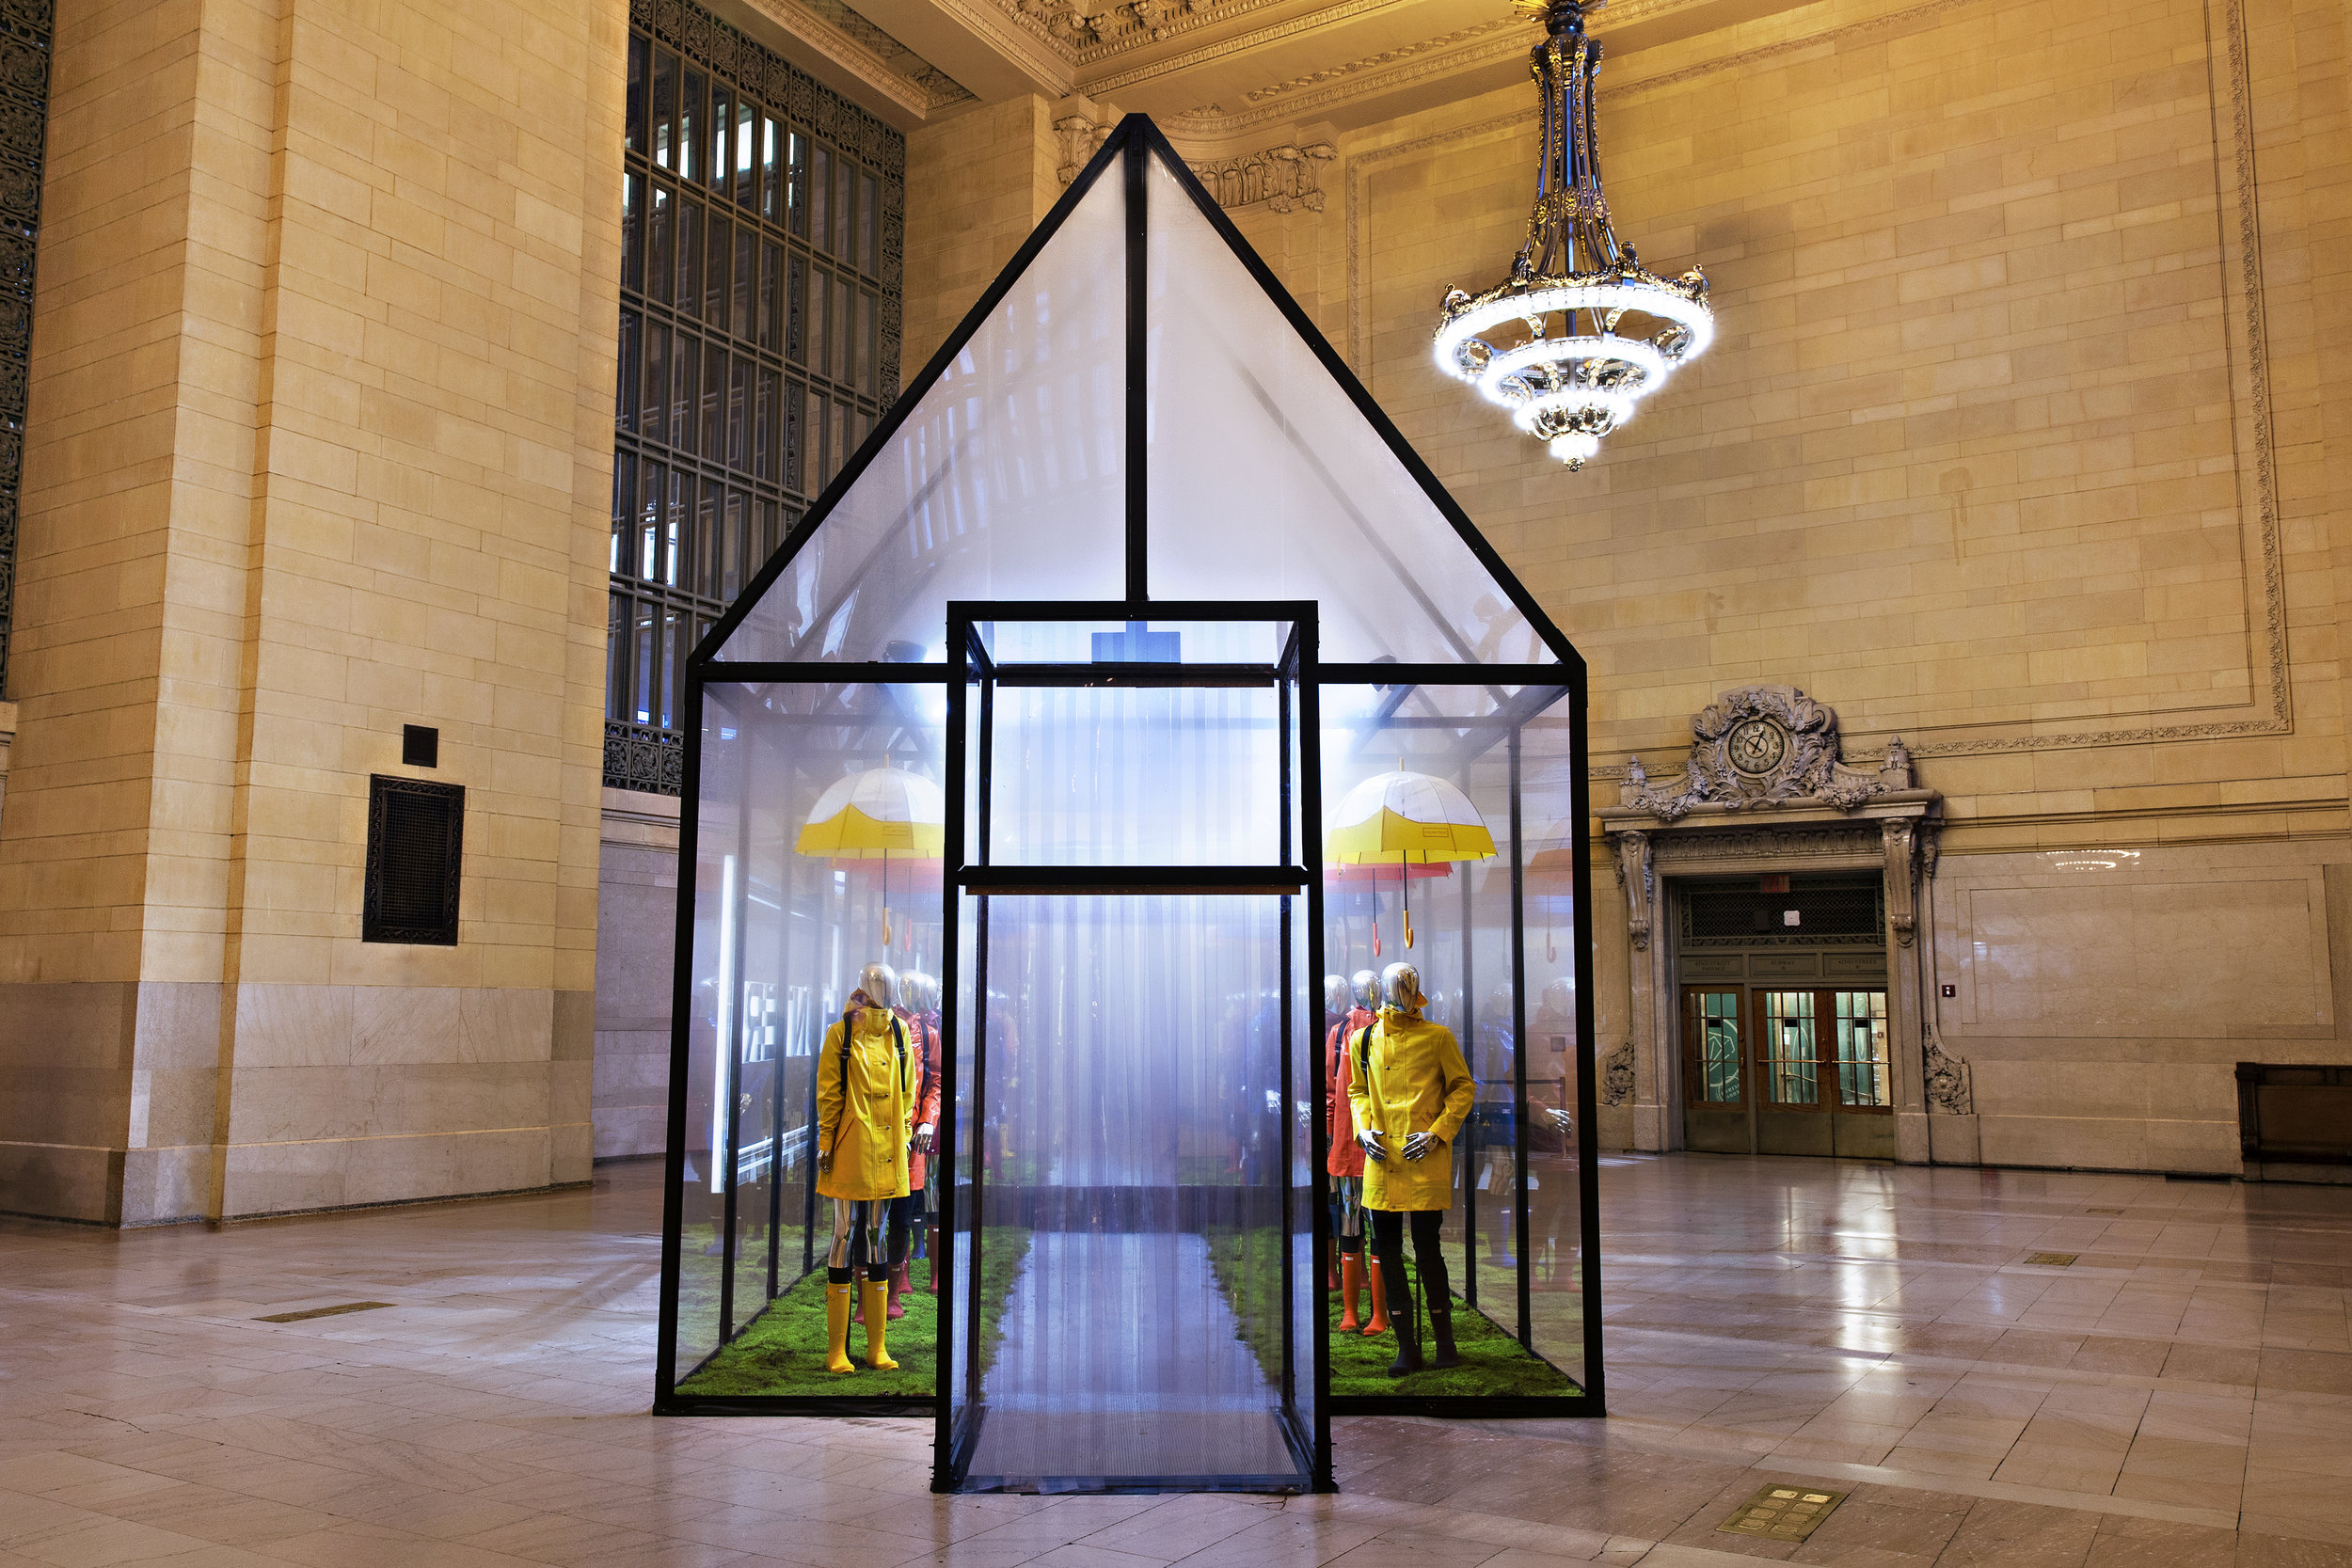 Hunter Boots, Grand Central Terminal, Vanderbilt Hall, Experiential Marketing, Pop-up Event, Events, B2C, Hunter Greenhouse, Cloud House, Brand Stunt, Invisible North, Brand Activation, Brand Experience, Production, Design, Agency, Event Marketing,